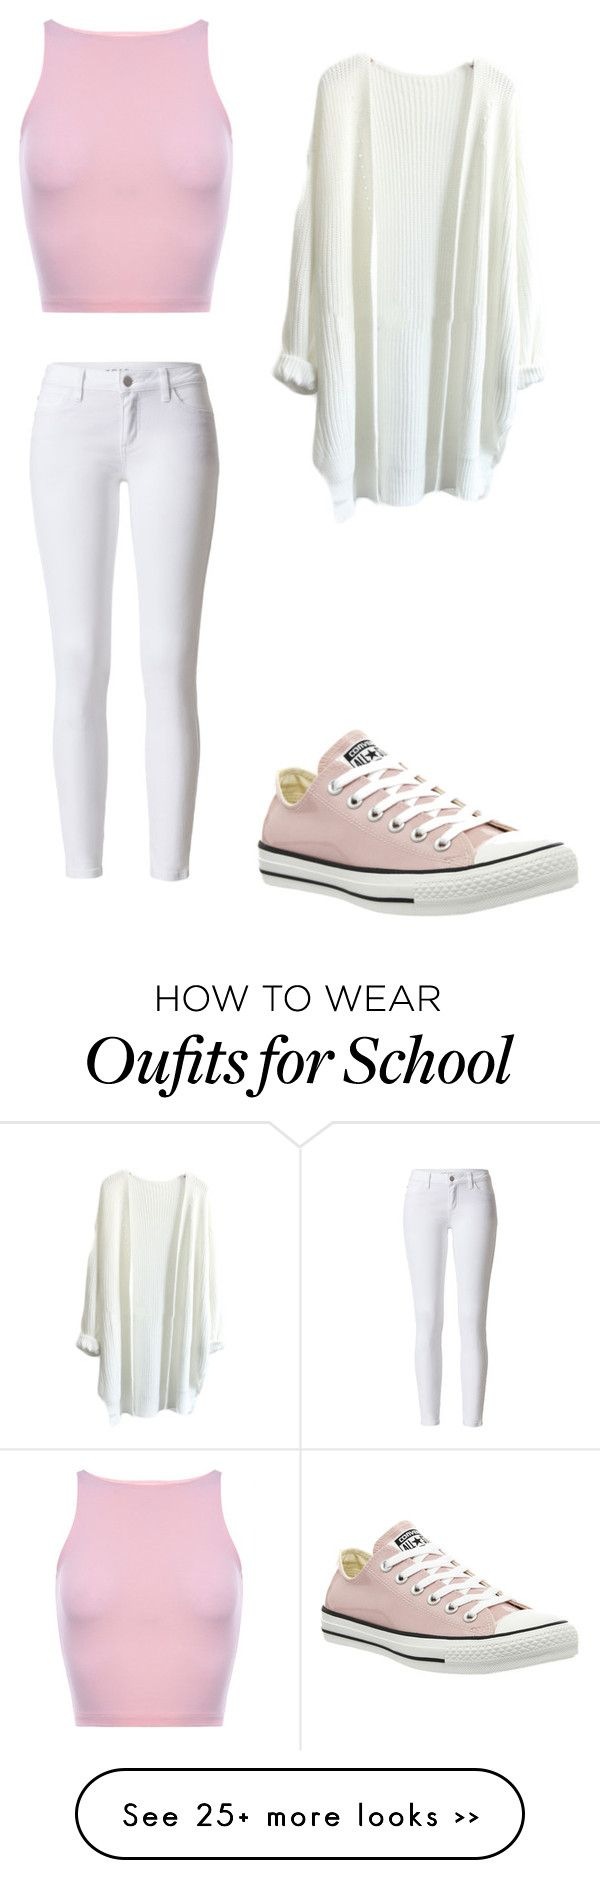 """School #95"" by bunnysarecute-876 on Polyvore"